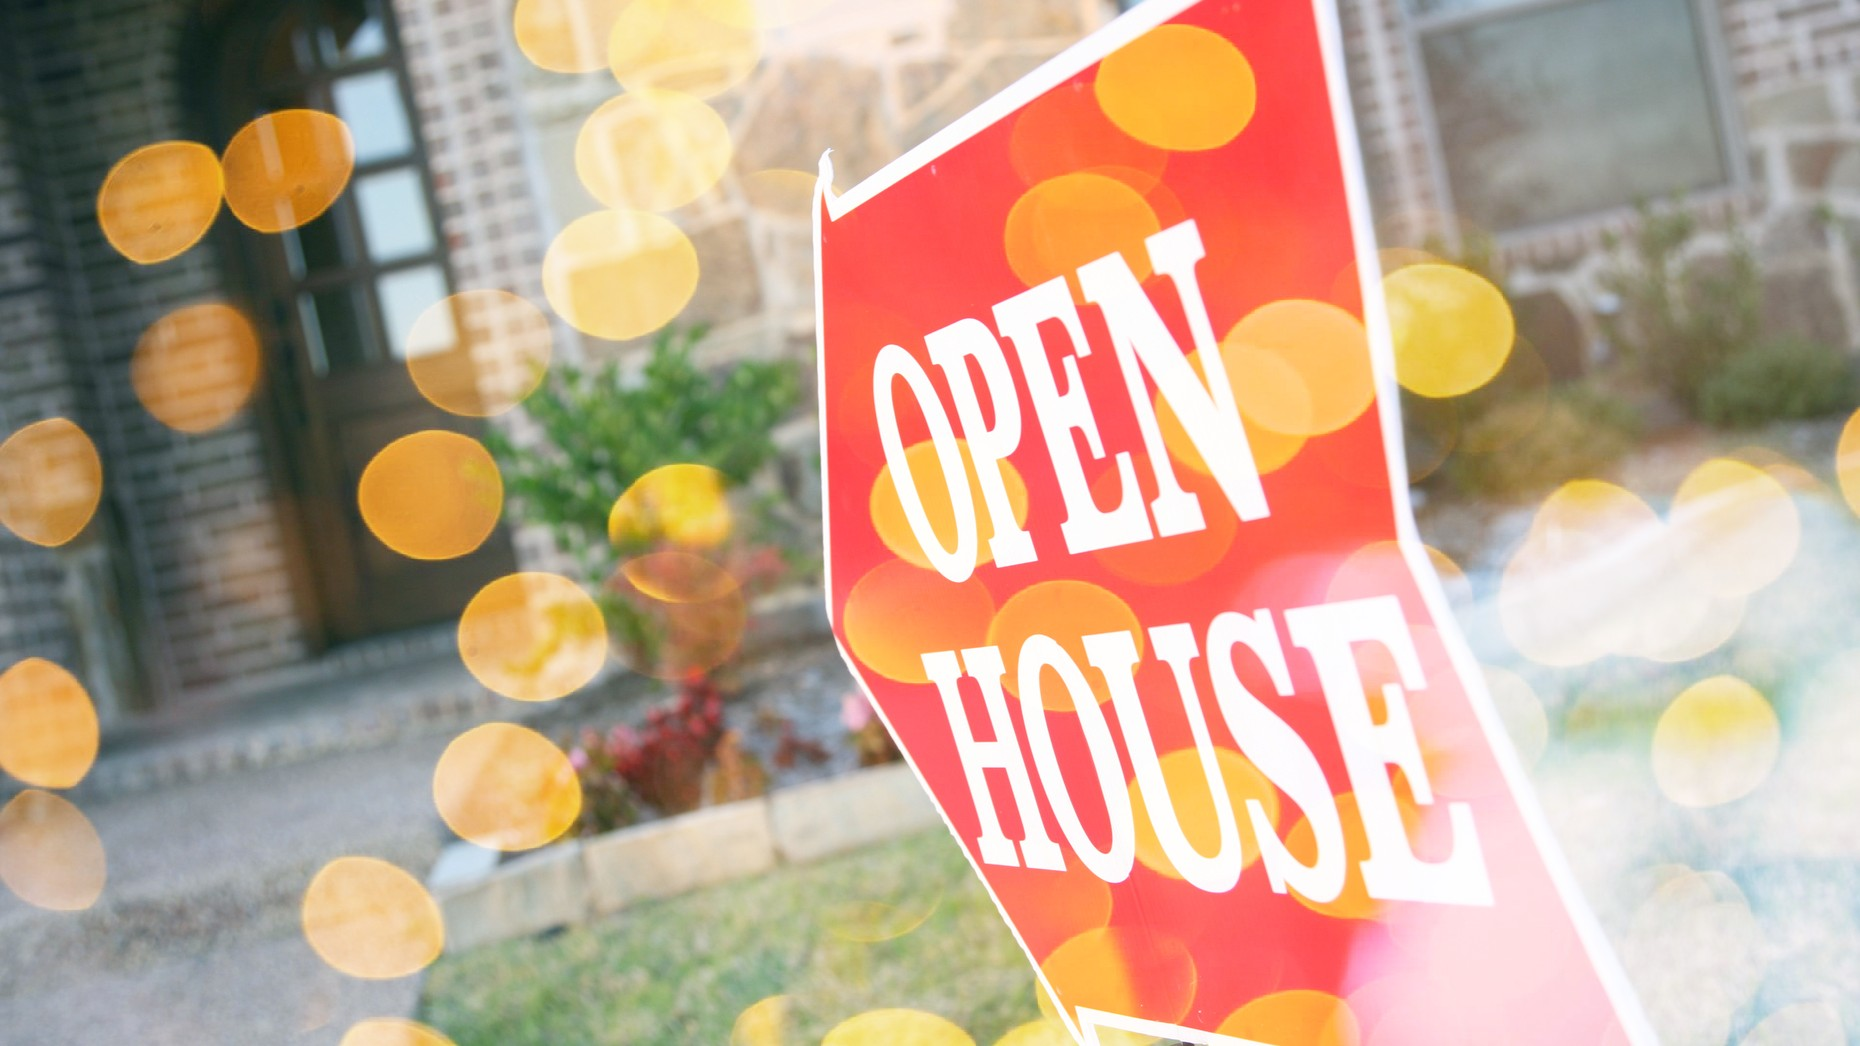 How to safely handle an open house